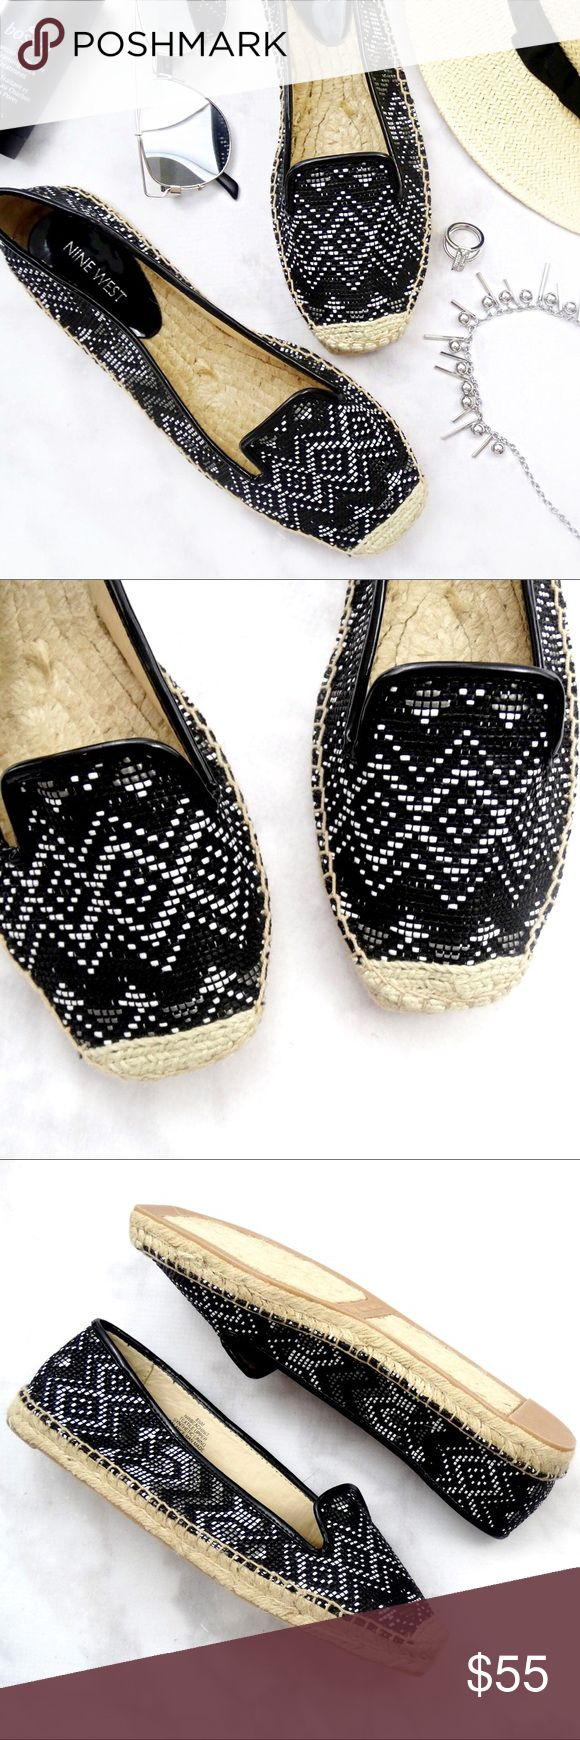 Black and White Geometric Printed Espadrille Flats Details: * Size 8.5 * Textile upper * Black, white, and gray/pewter geometric print  * New in box  05281707 Nine West Shoes Espadrilles